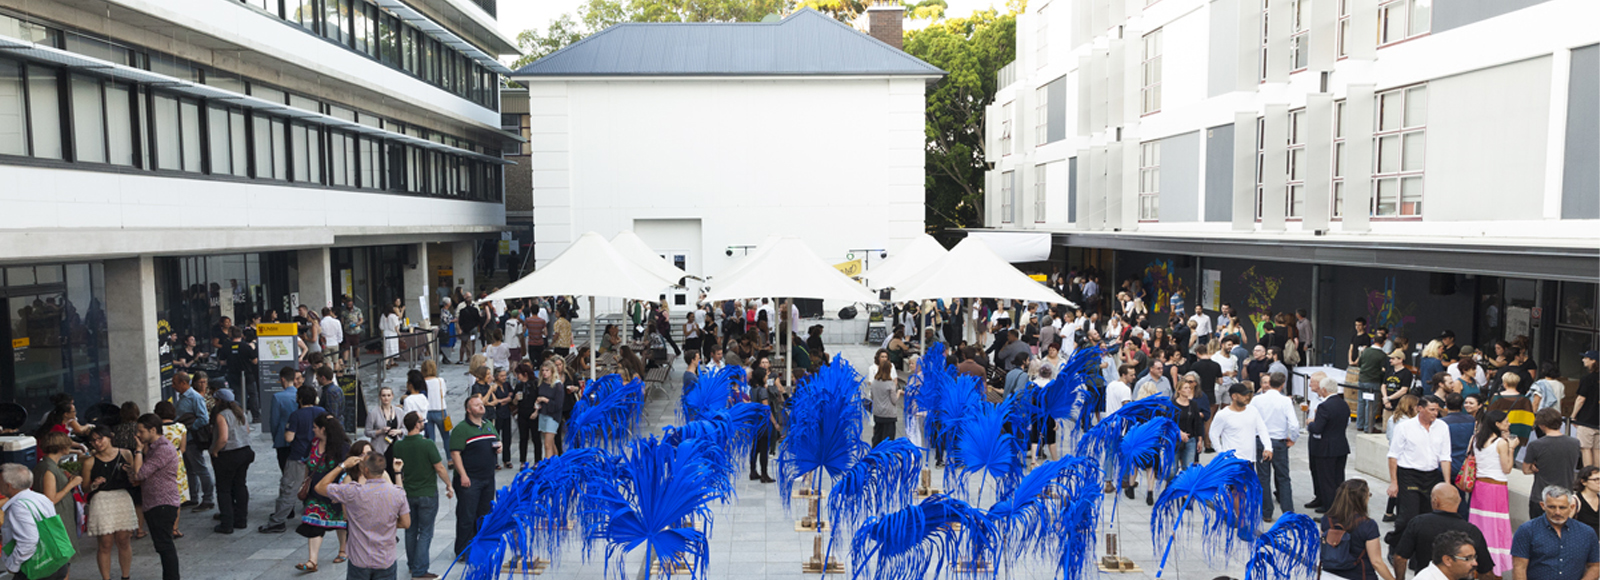 Image: ANNUAL 15 Opening event. Photo: Silversalt